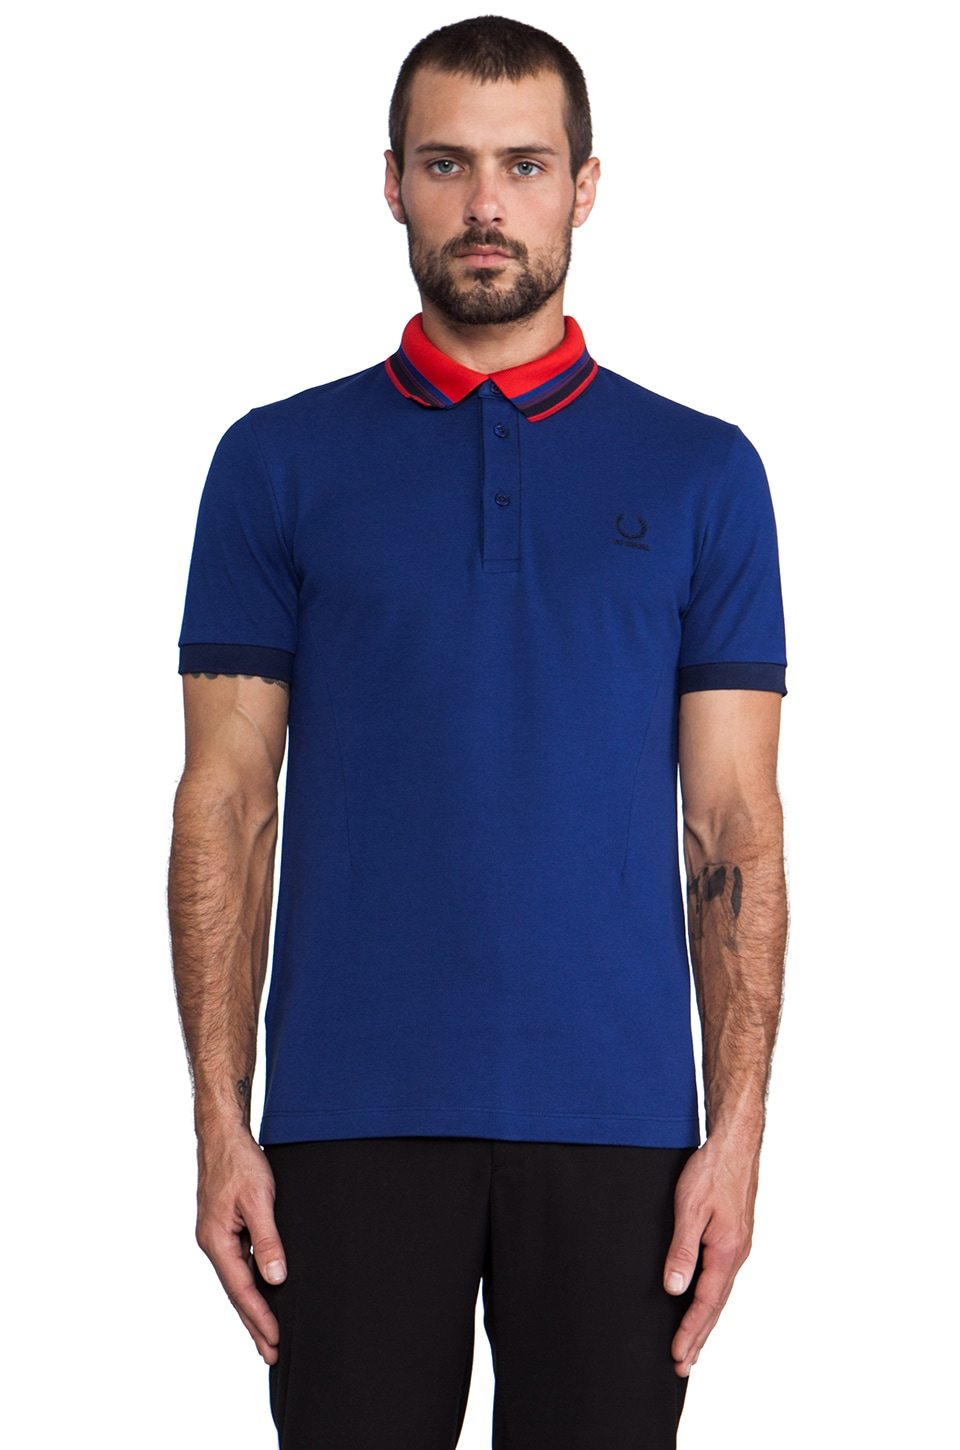 Fred Perry x Raf Simons Shirt w/ Detachable Collar in Mid Blue